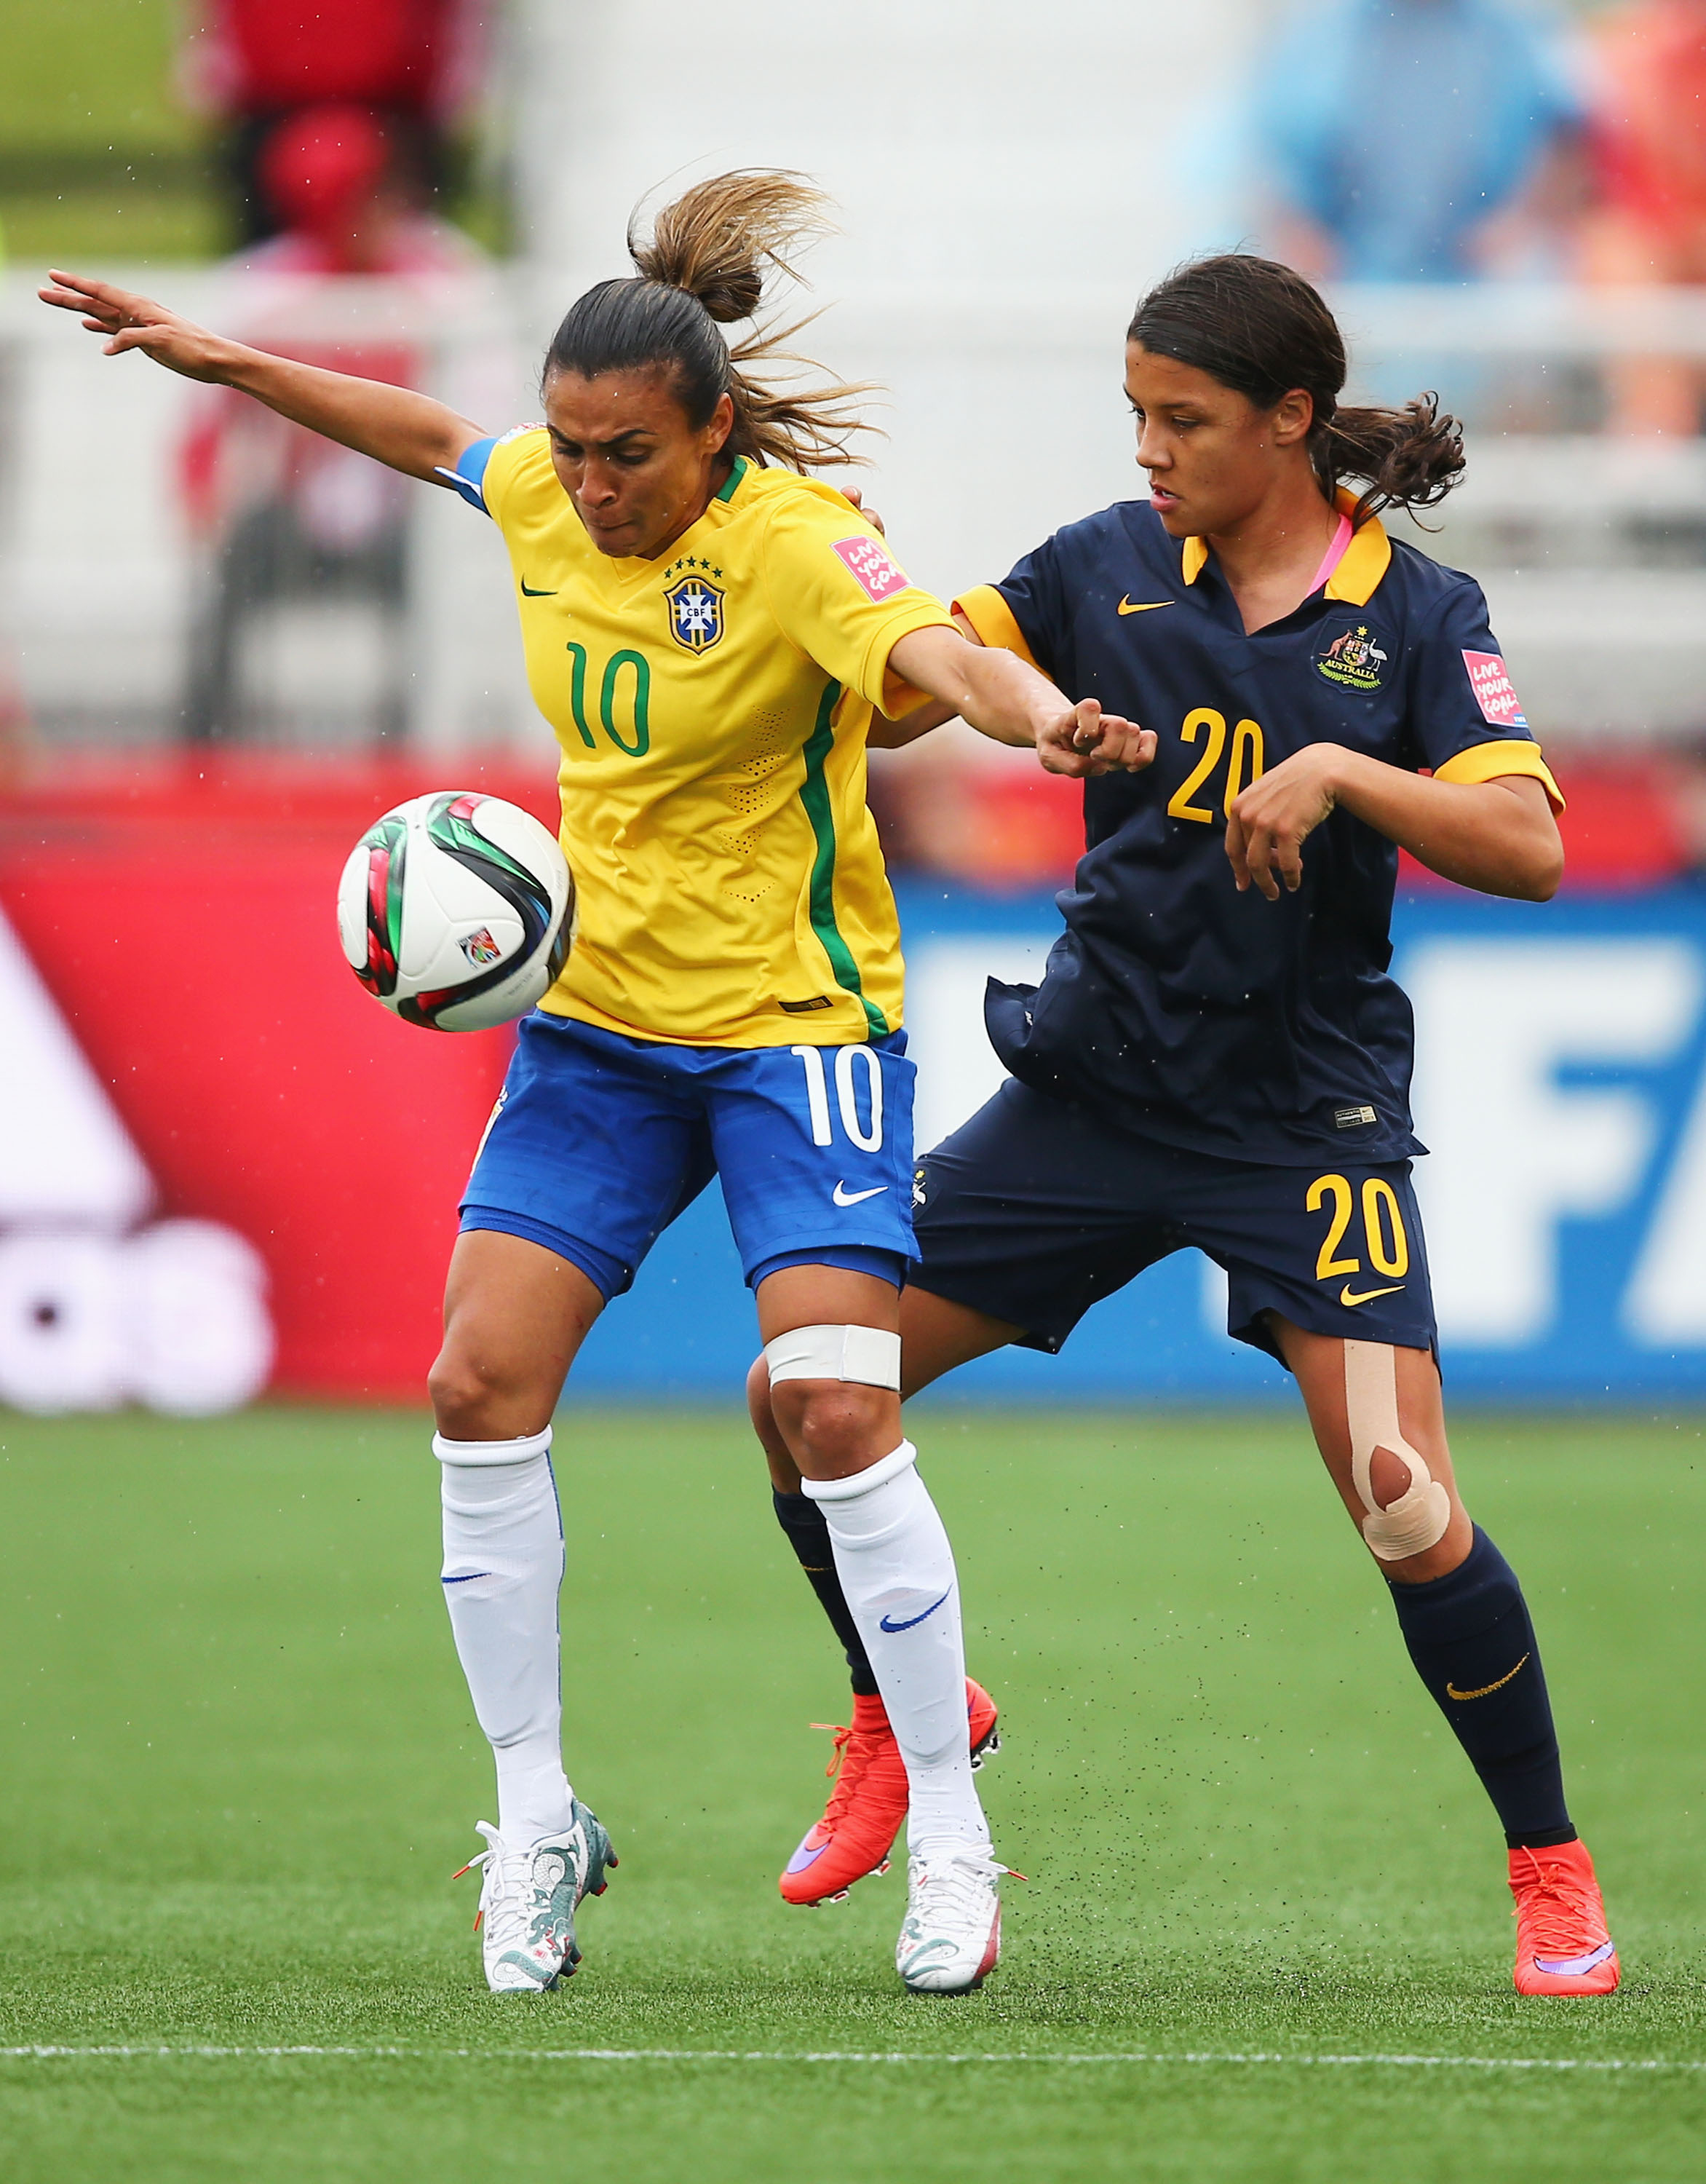 Sam Kerr shuts down Brazil's superstar Marta and was relentless with her run all game.